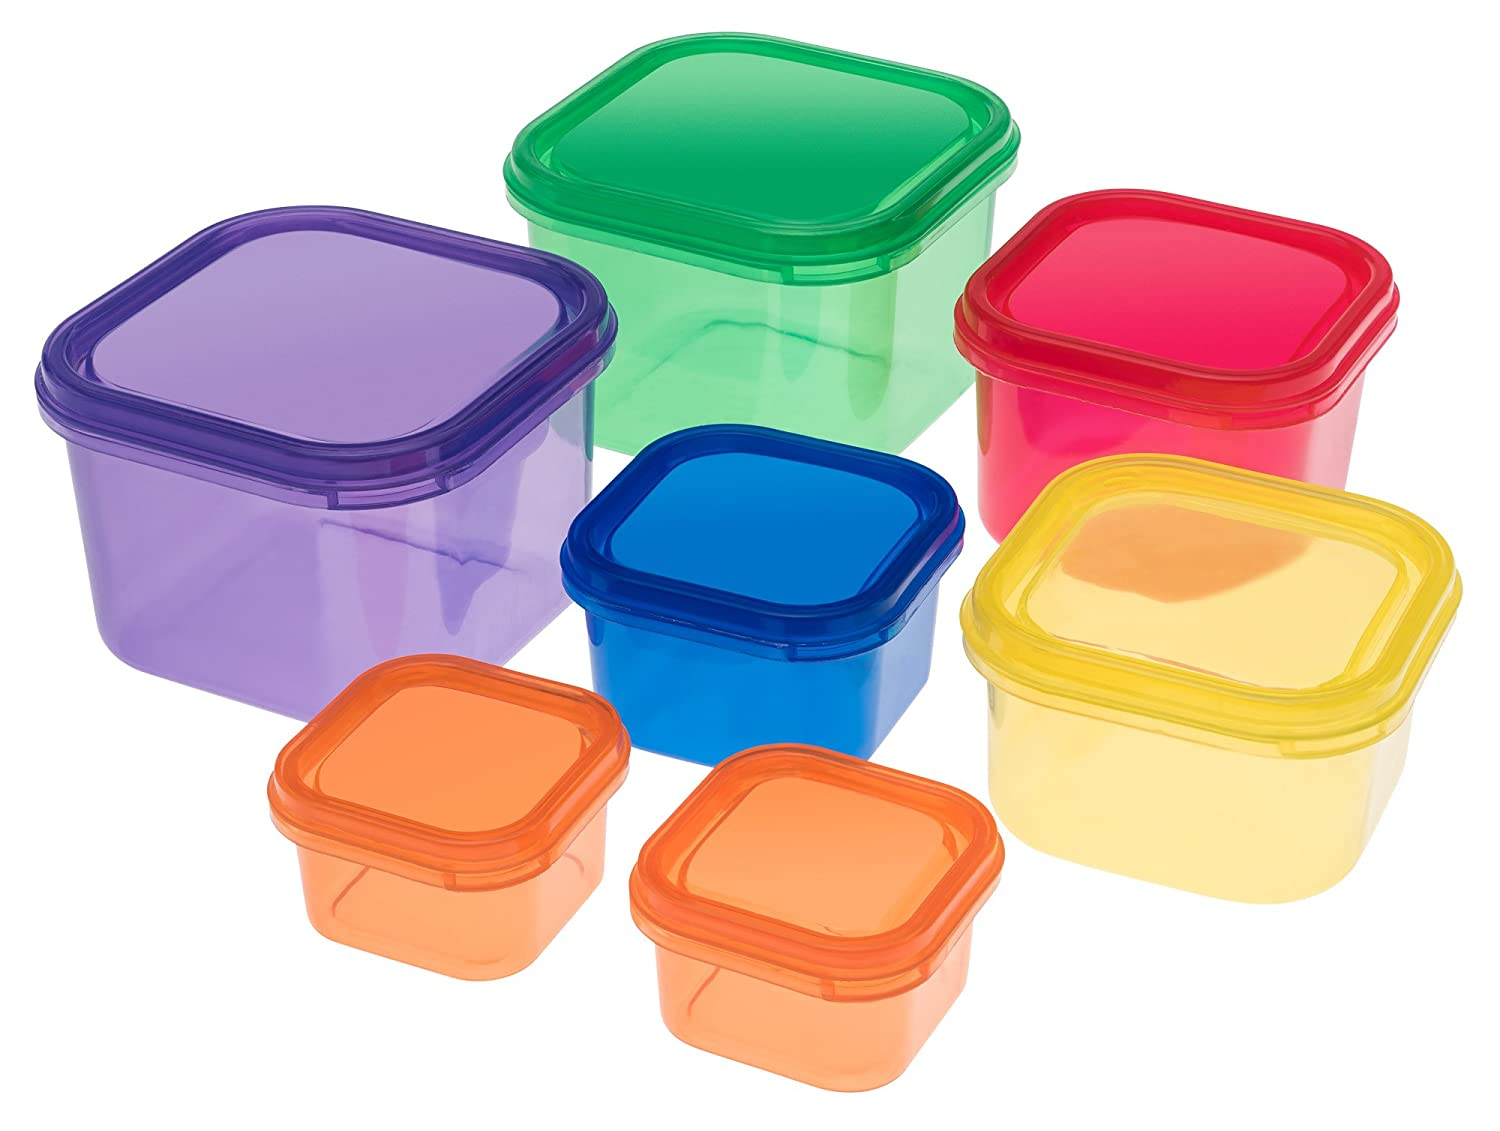 Portion Control Containers Set {7 Piece}: Color Meal Prep Food Storage Containers for Weight Loss with BONUS GUIDE | Leak Proof, Microwave & Dishwasher Safe | Similar to 21 Day Fix by Sweet Concepts